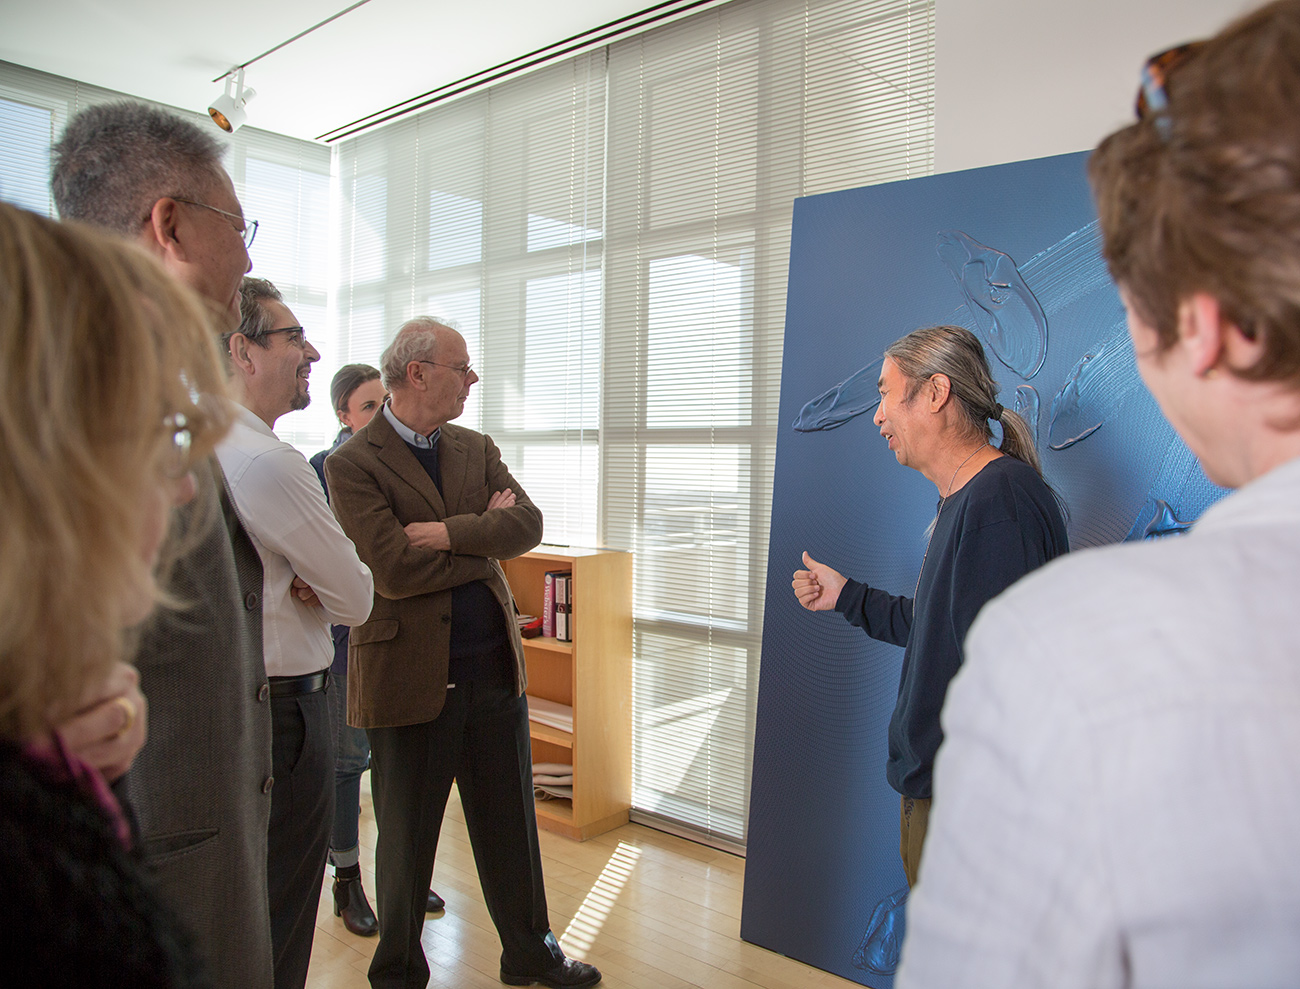 A small group gathers to admire a large blue painting on the floor, filled with gestural brushstrokes. At center, the artist speaks about his work